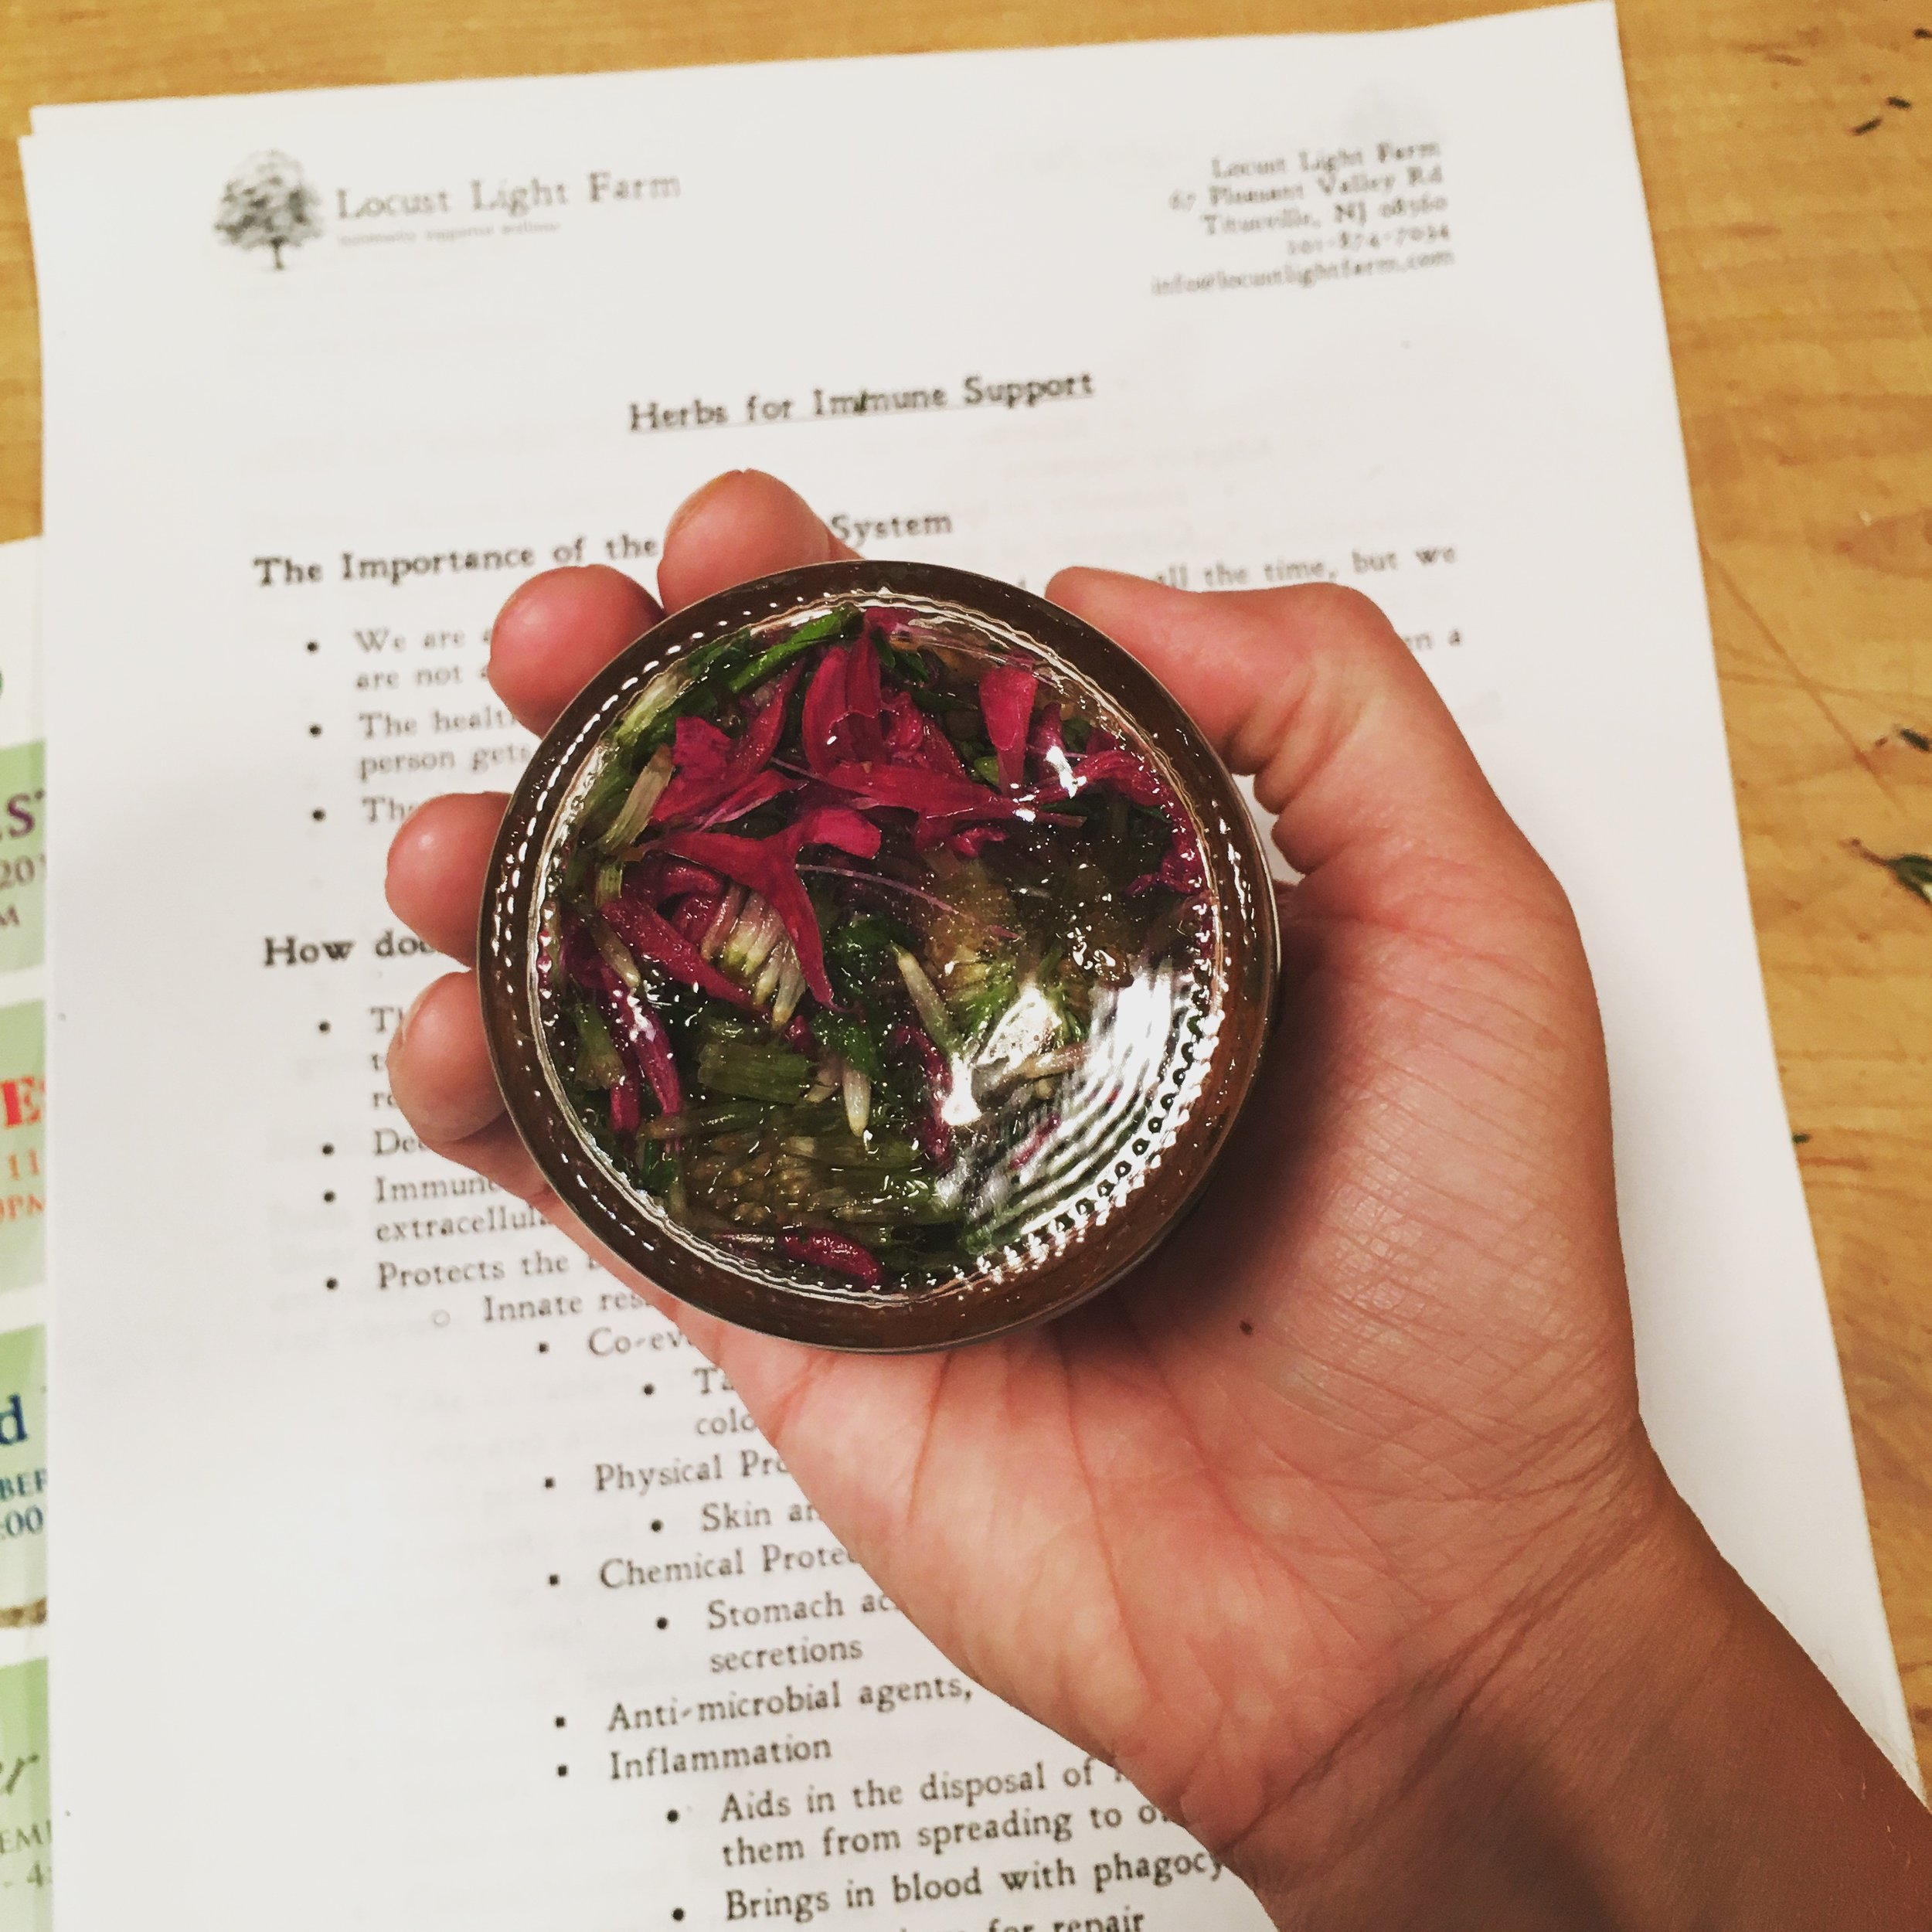 A handcrafted tincture from class